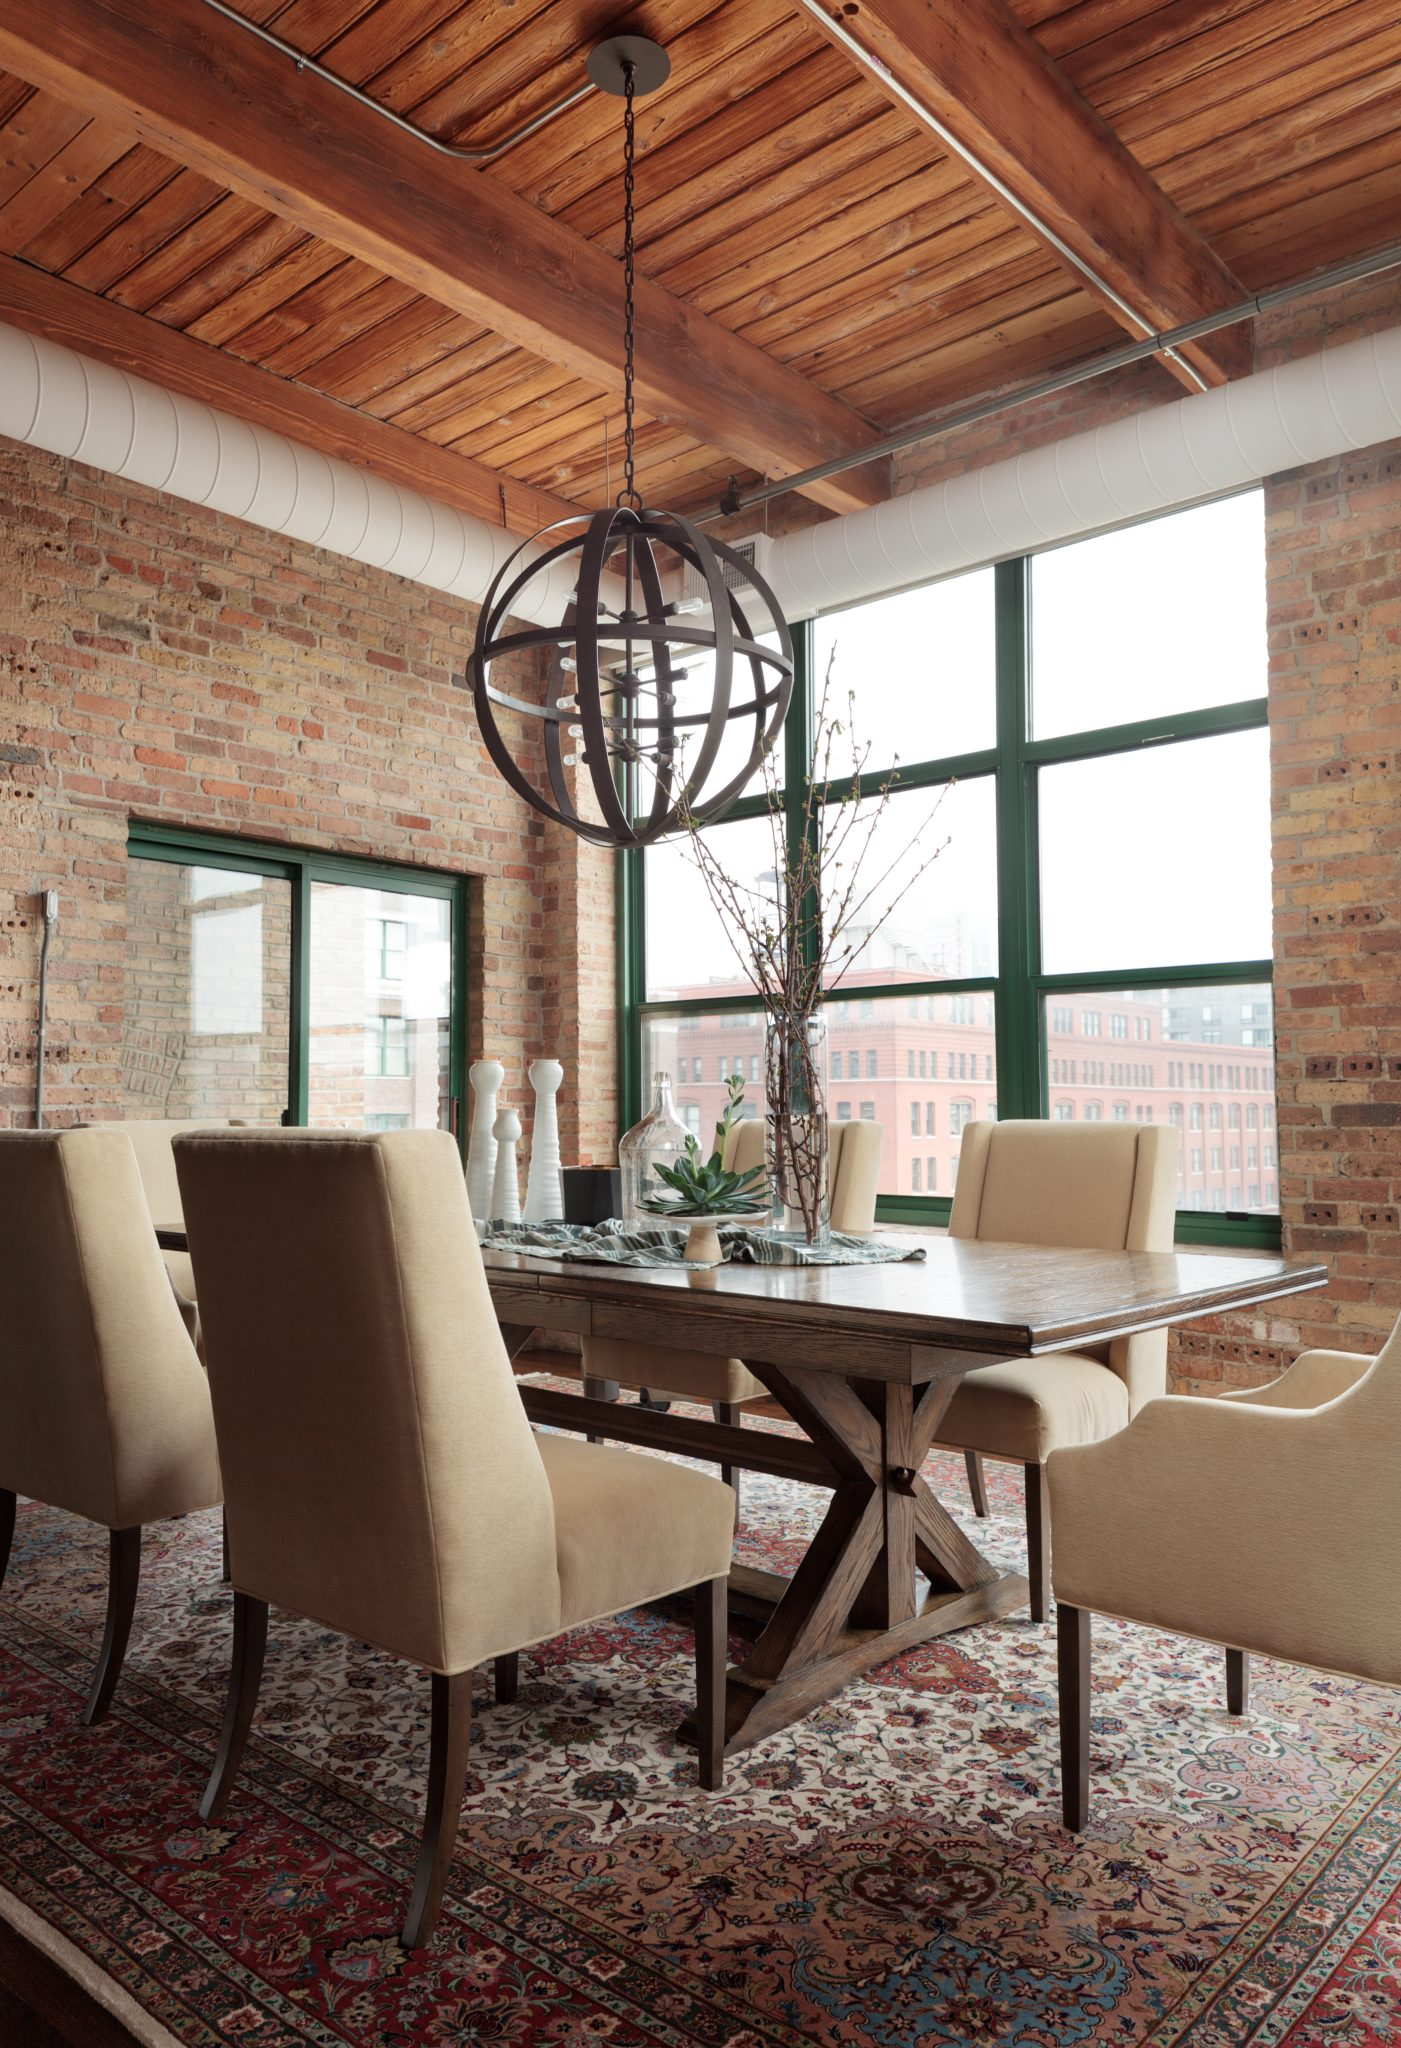 Chicago loft dining space by CK Interior Design